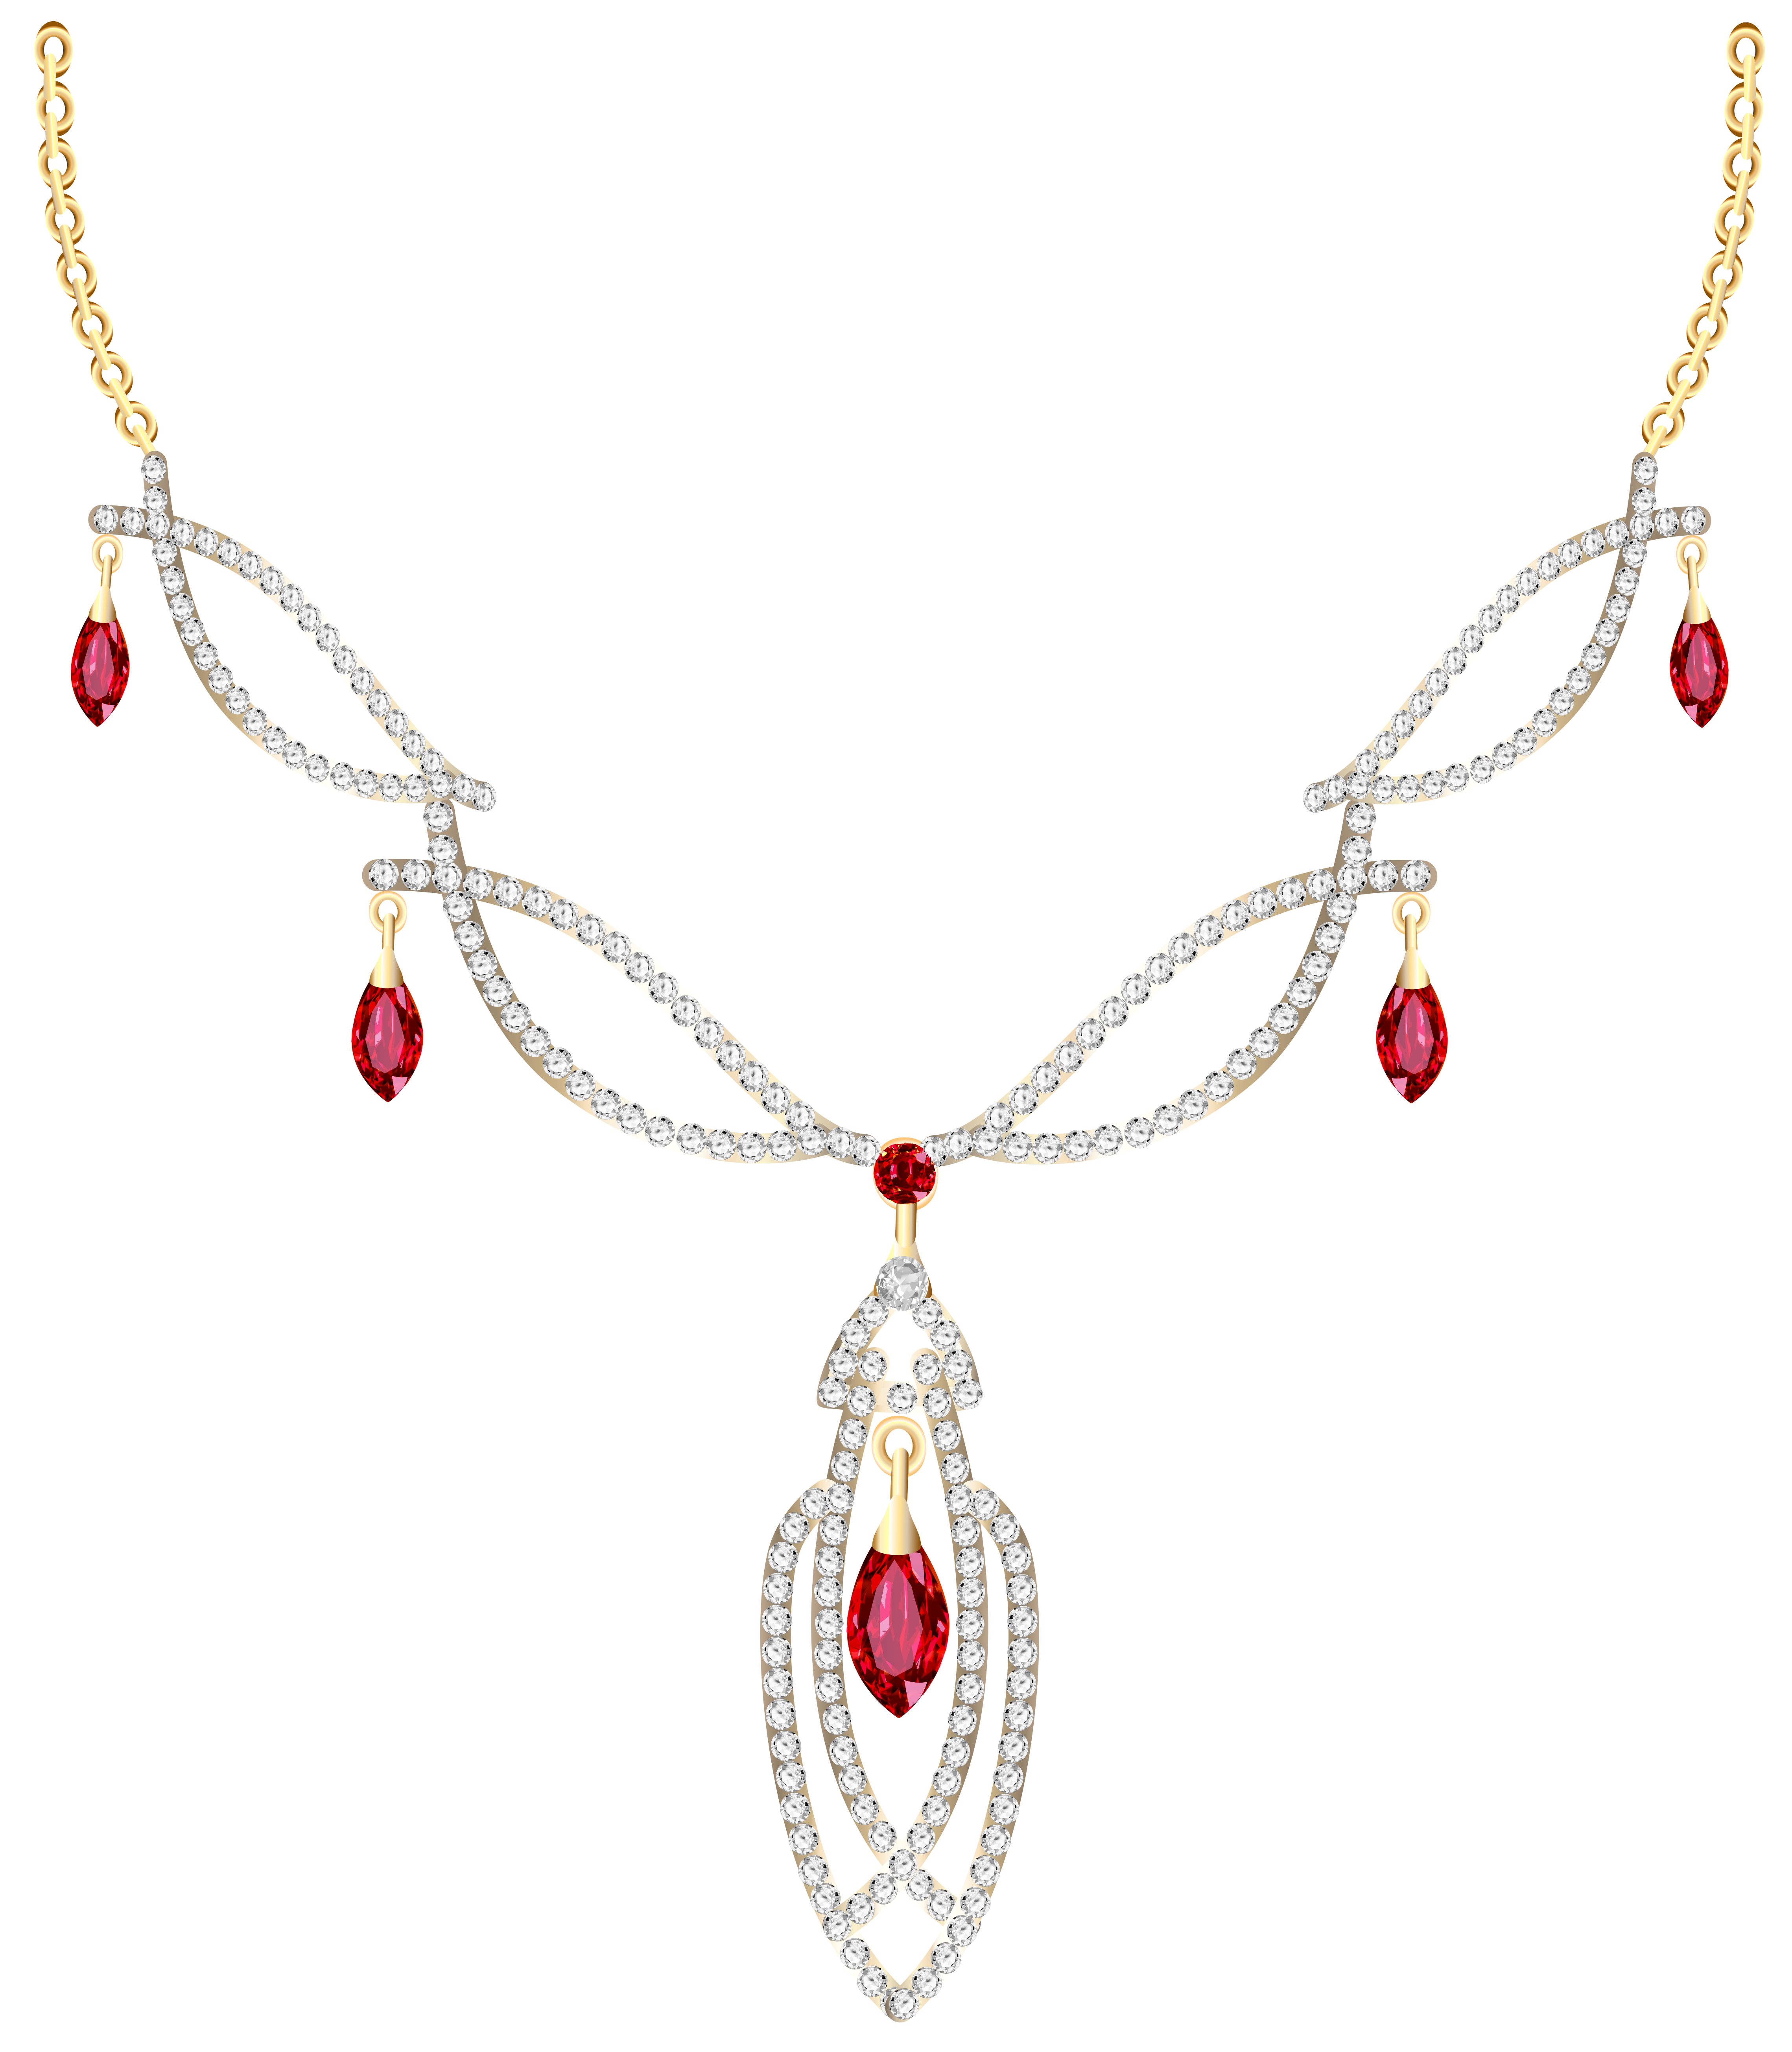 Pendent clipart jewelry Size full View Golden PNG